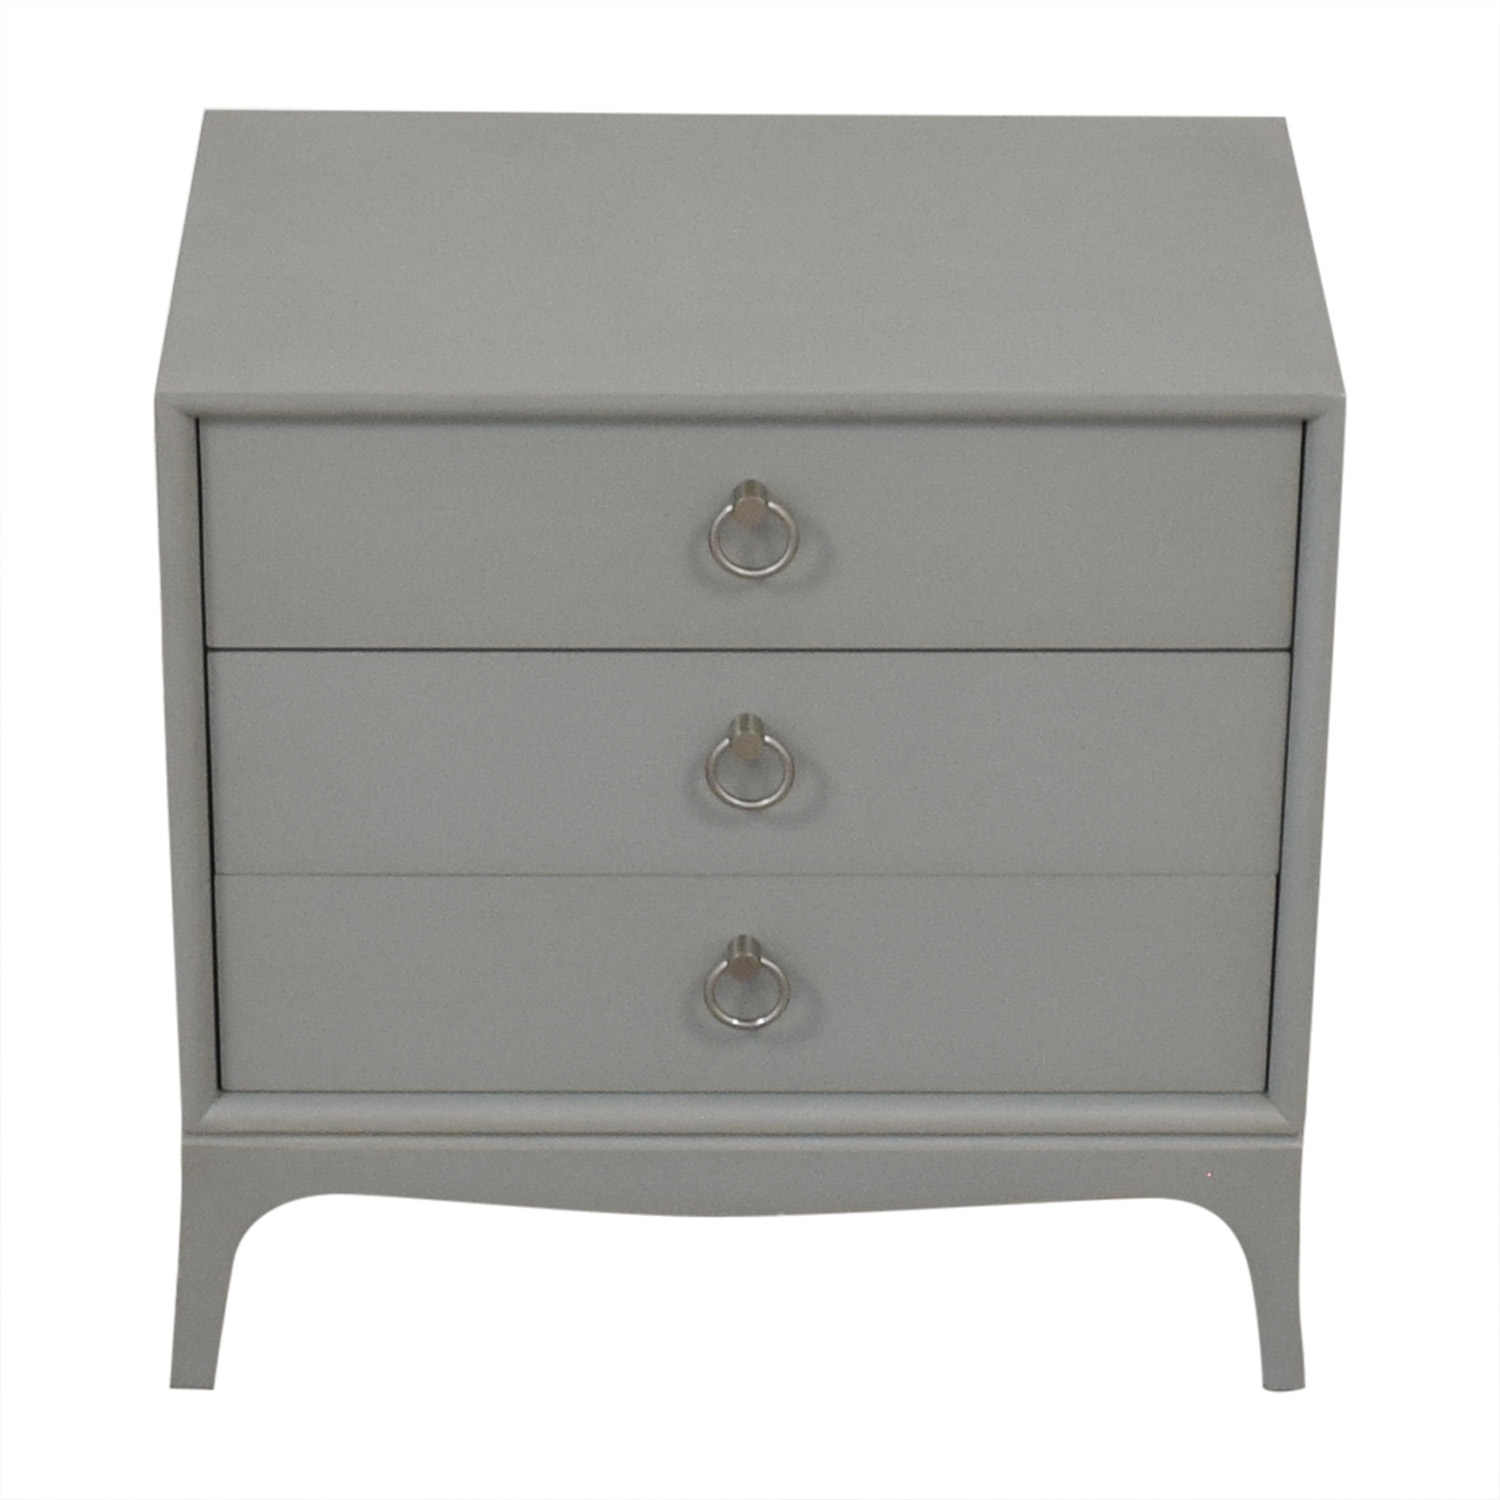 Redford House Redford House Fiona Nightstand for sale